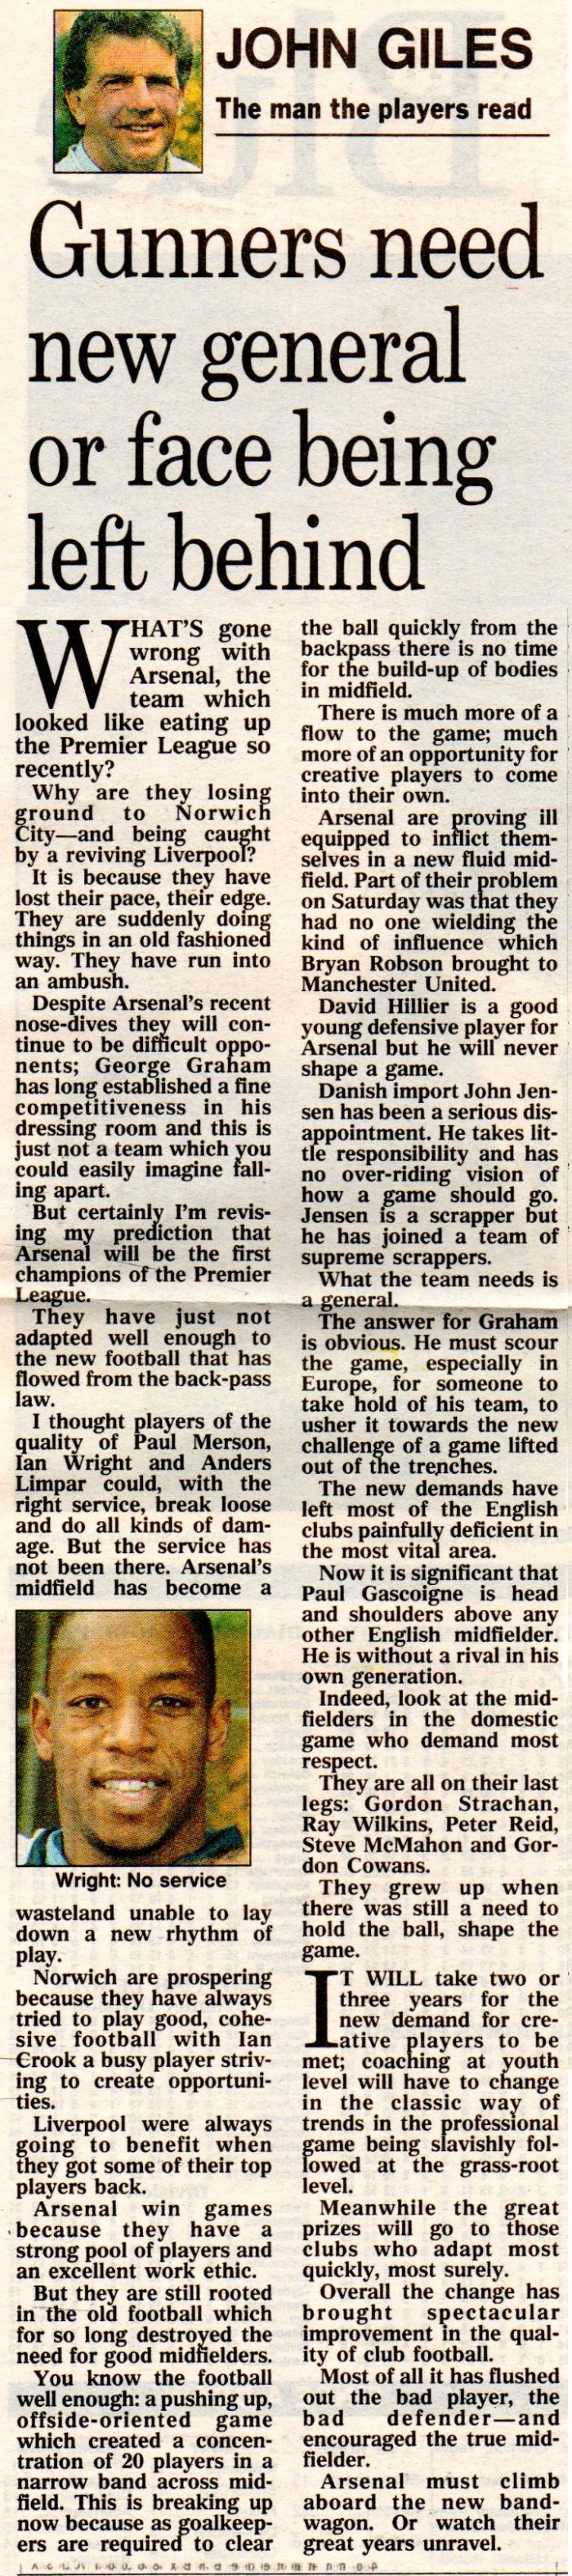 John Giles on Arsenal 1 Dec 1992